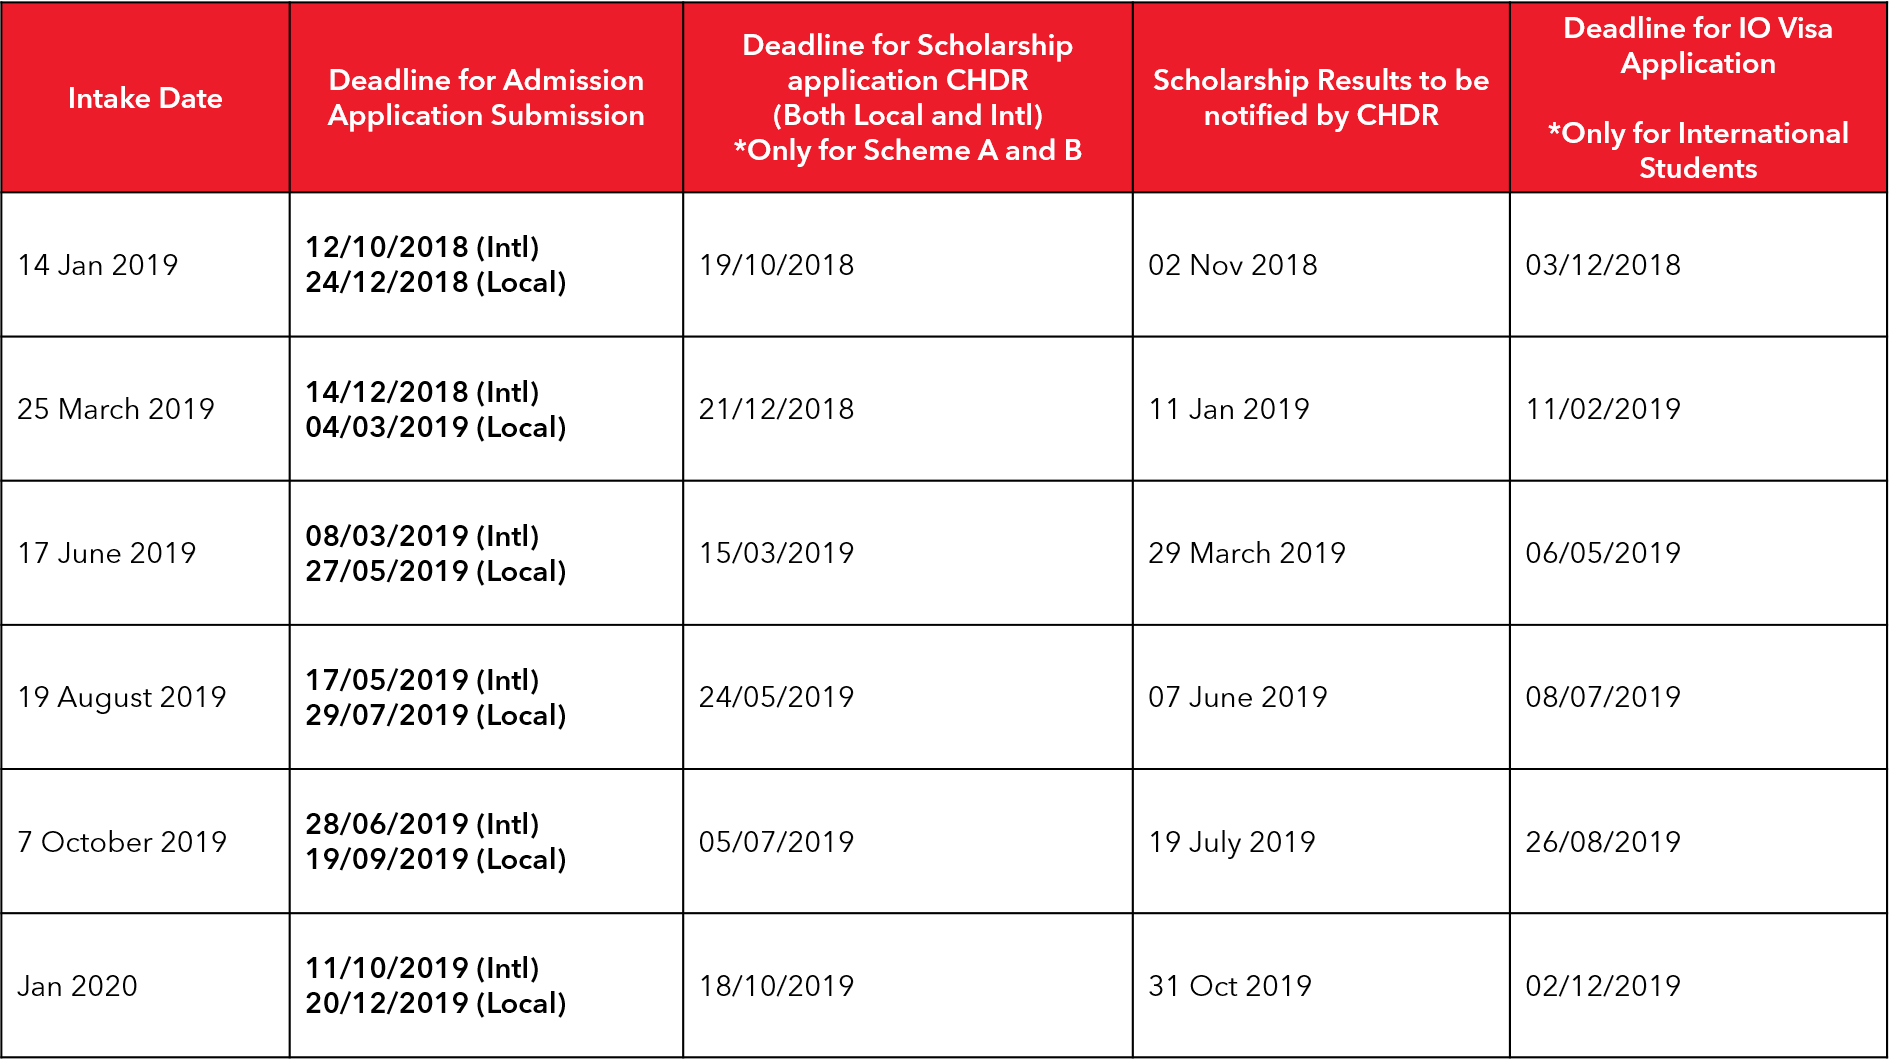 Table showing application deadline for Postgradute Scholarship at Taylor's University